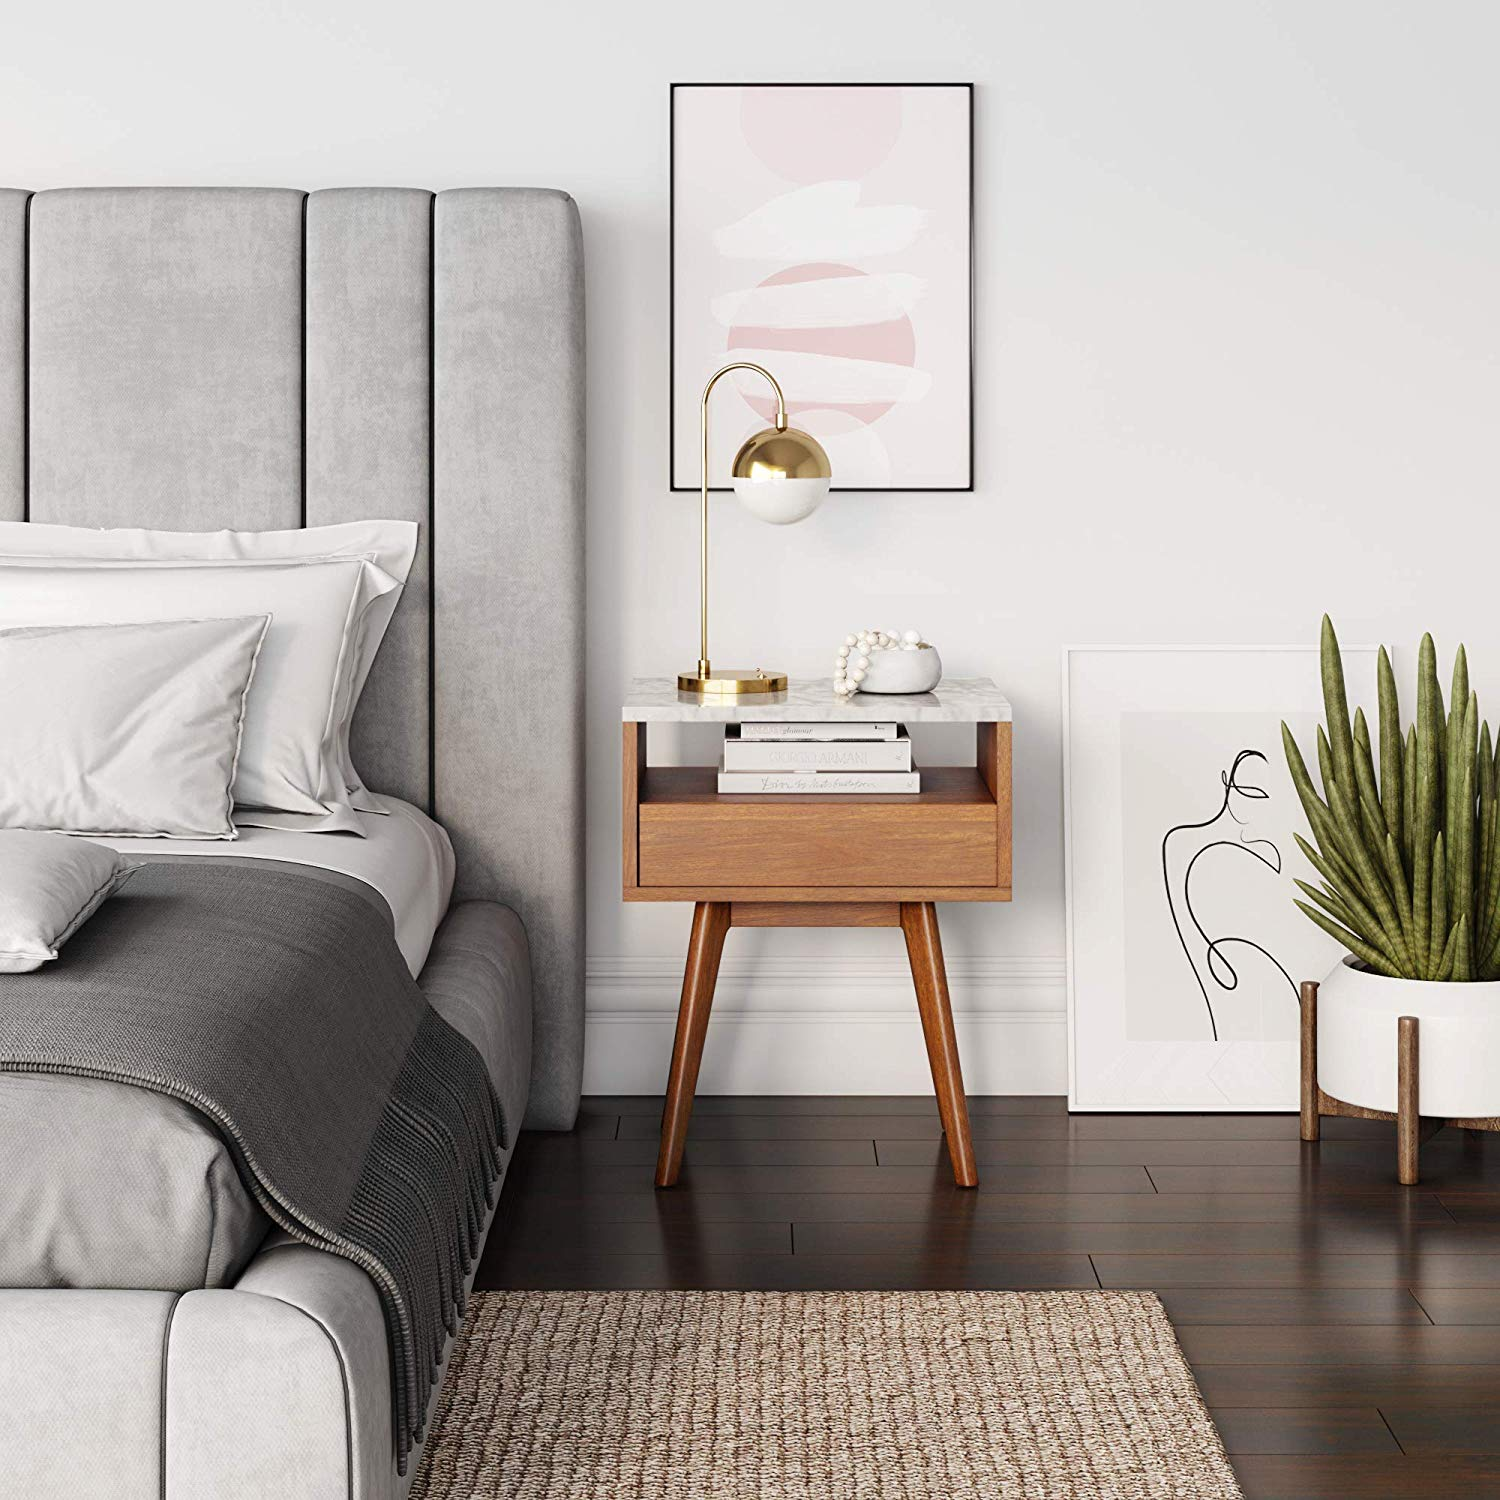 10 Bedside Tables that Blend Convenience and Style in the Bedroom